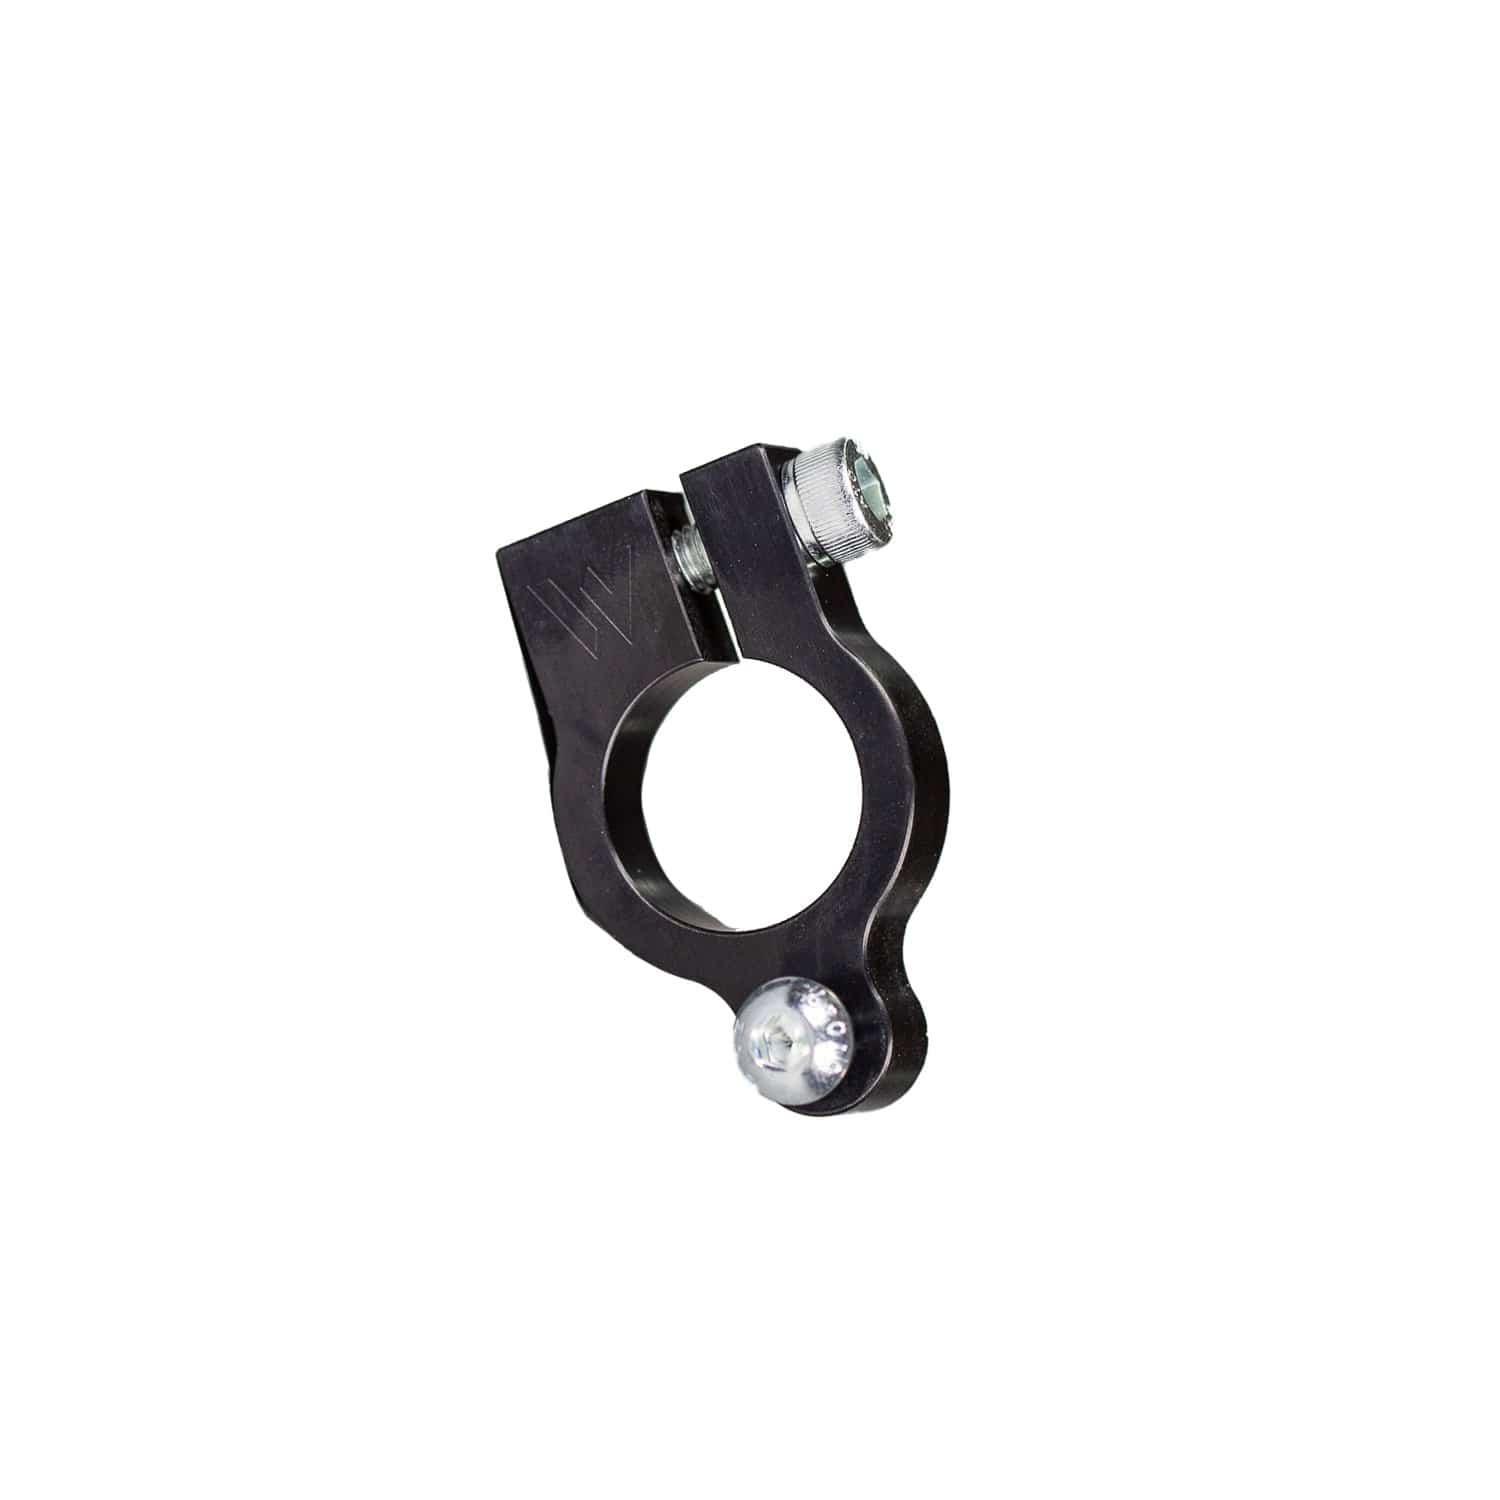 12-3200 Universal Reservoir Mount Bracket